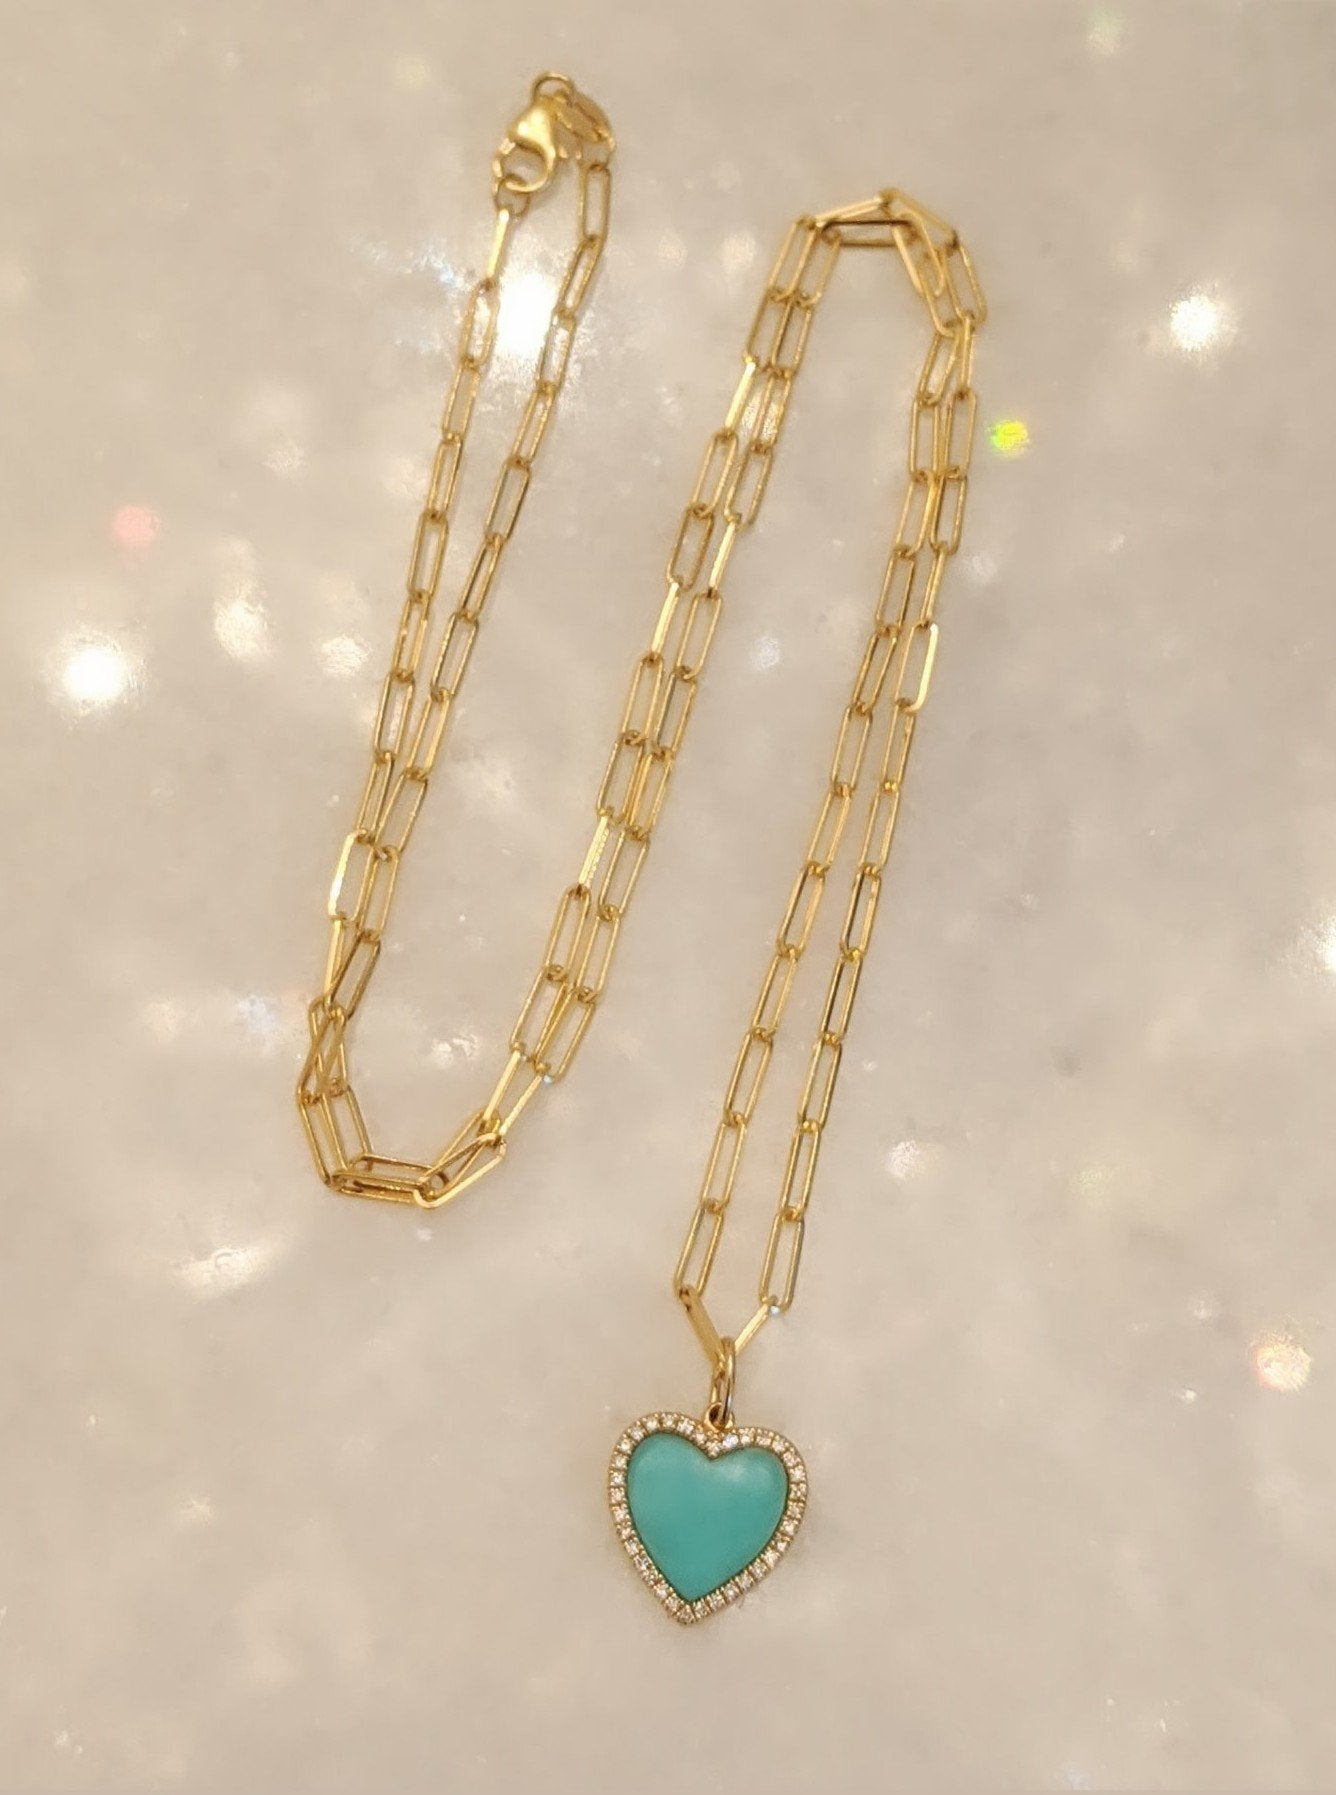 Turquoise Heart Necklace With Diamonds on Paperclip Link Chain 14k